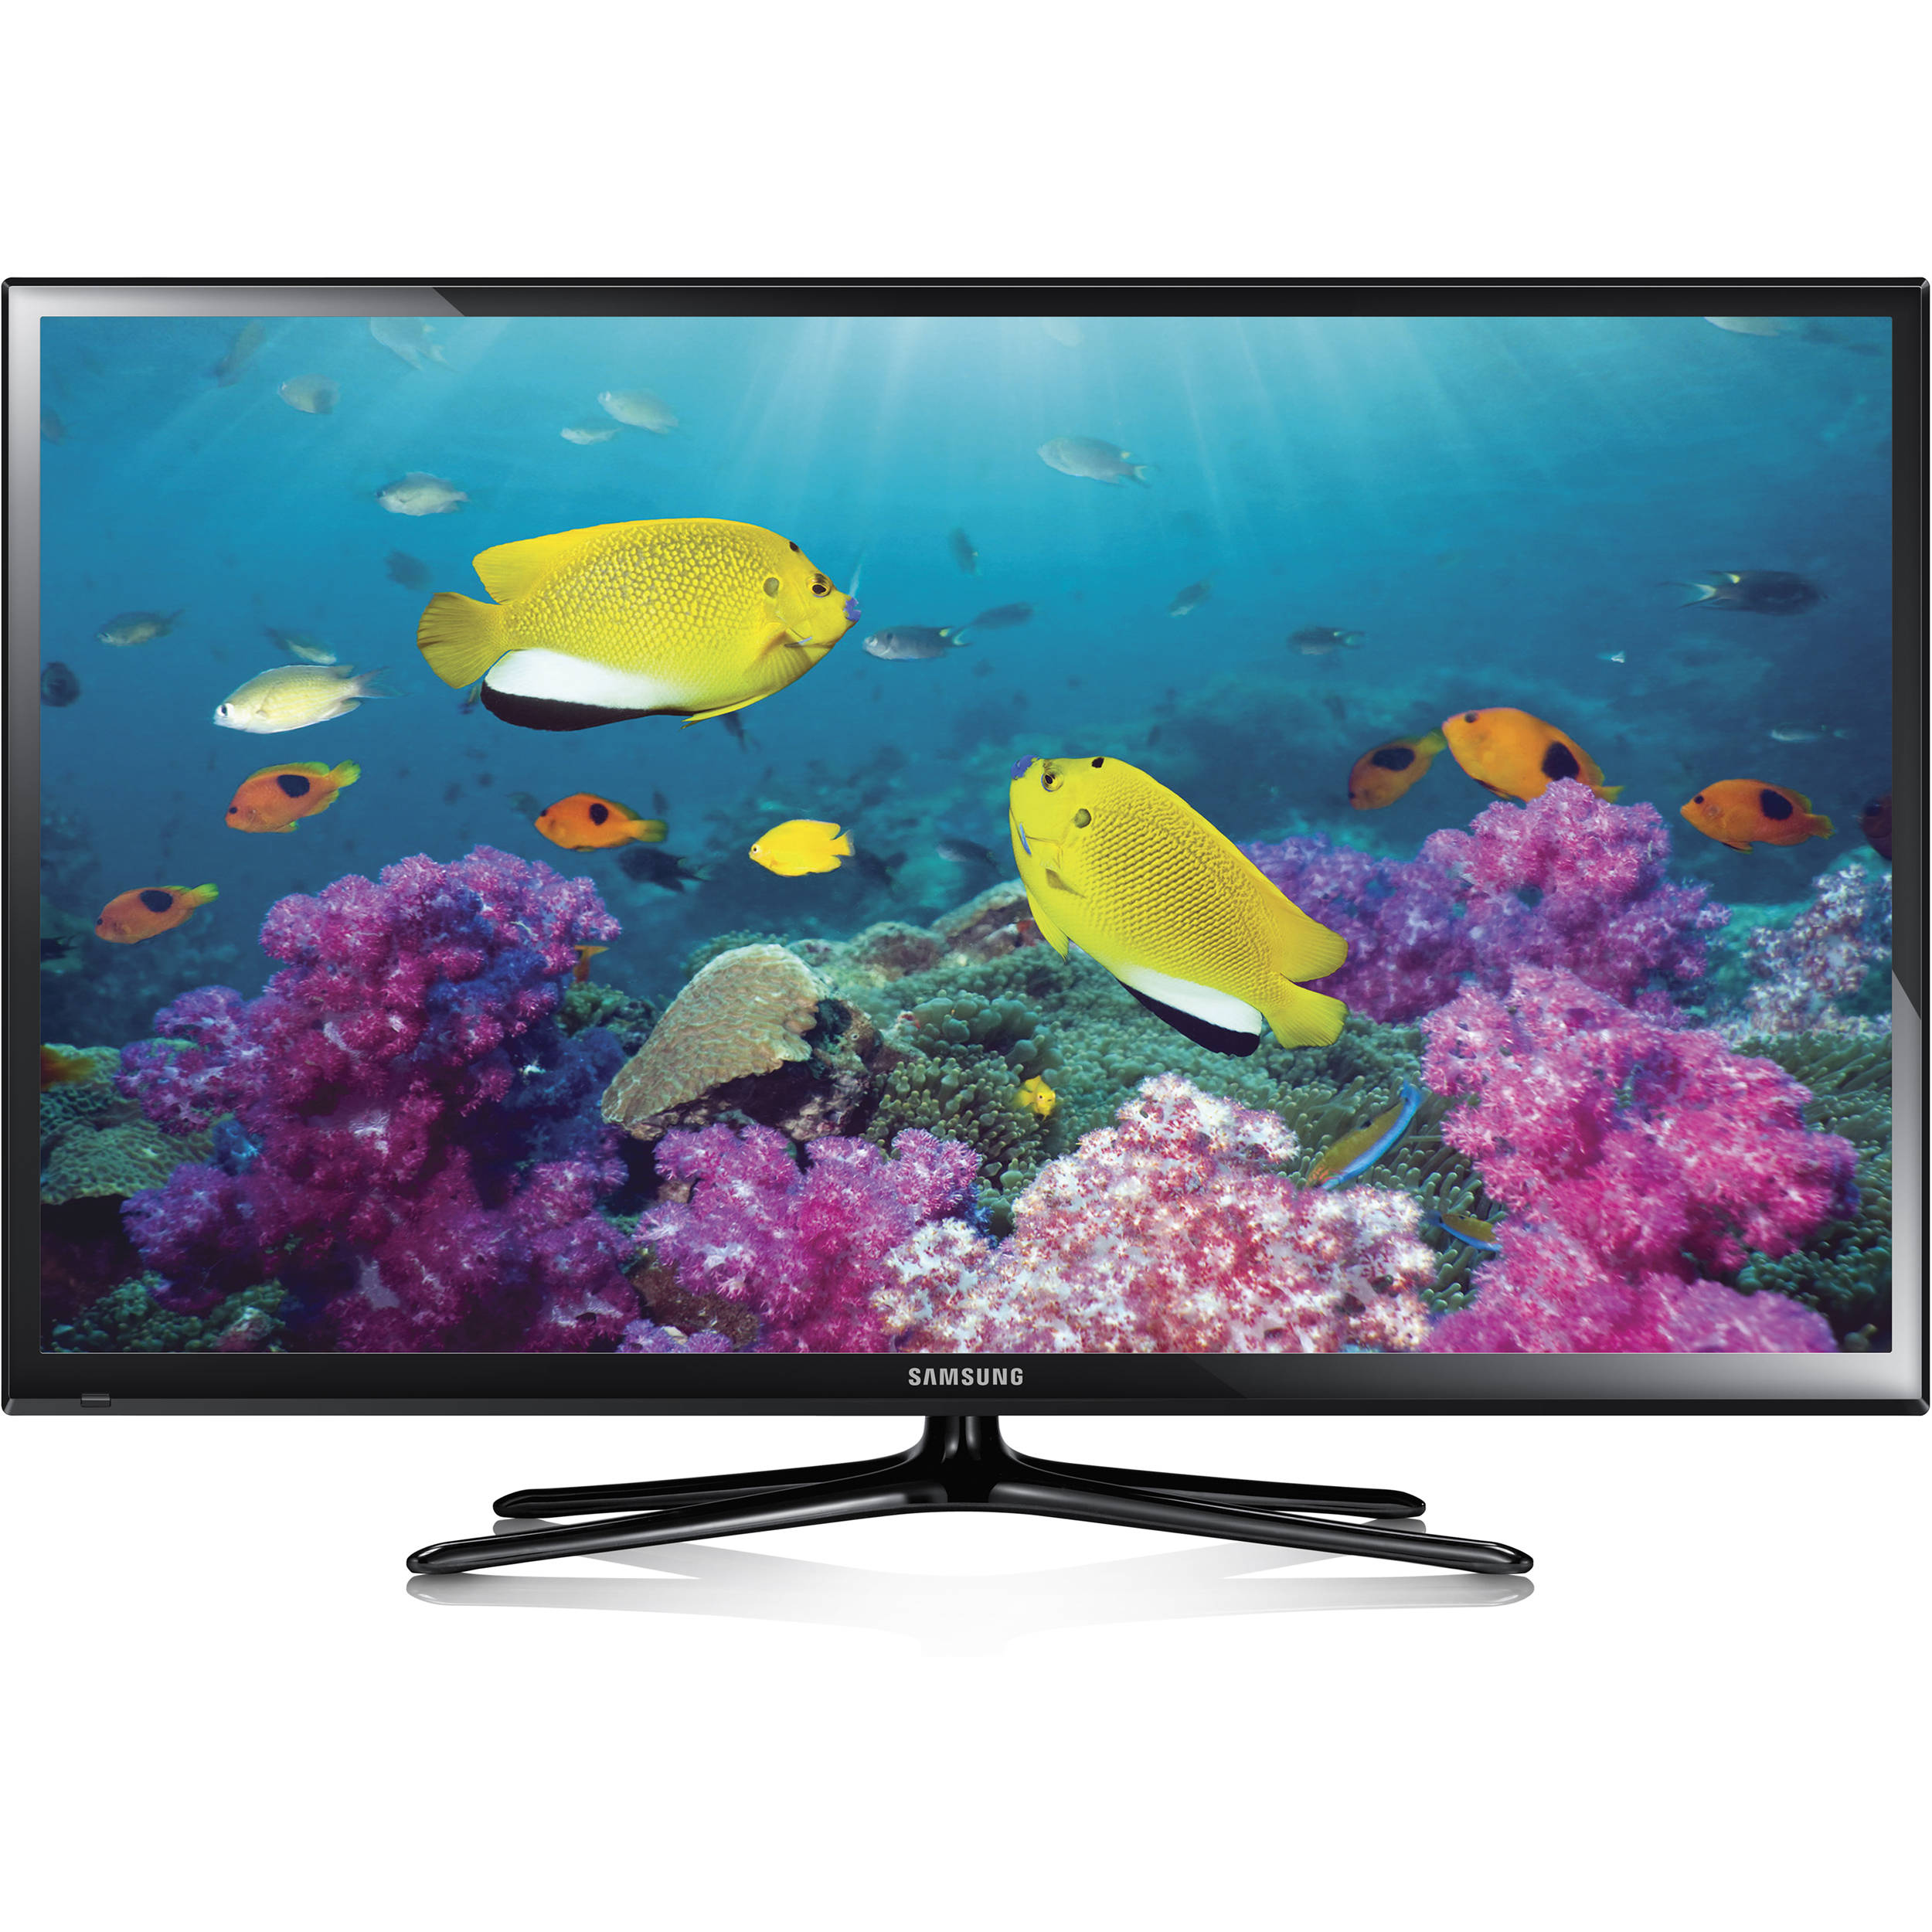 samsung 51 5300 series full hd plasma tv pn51f5300bfxza. Black Bedroom Furniture Sets. Home Design Ideas